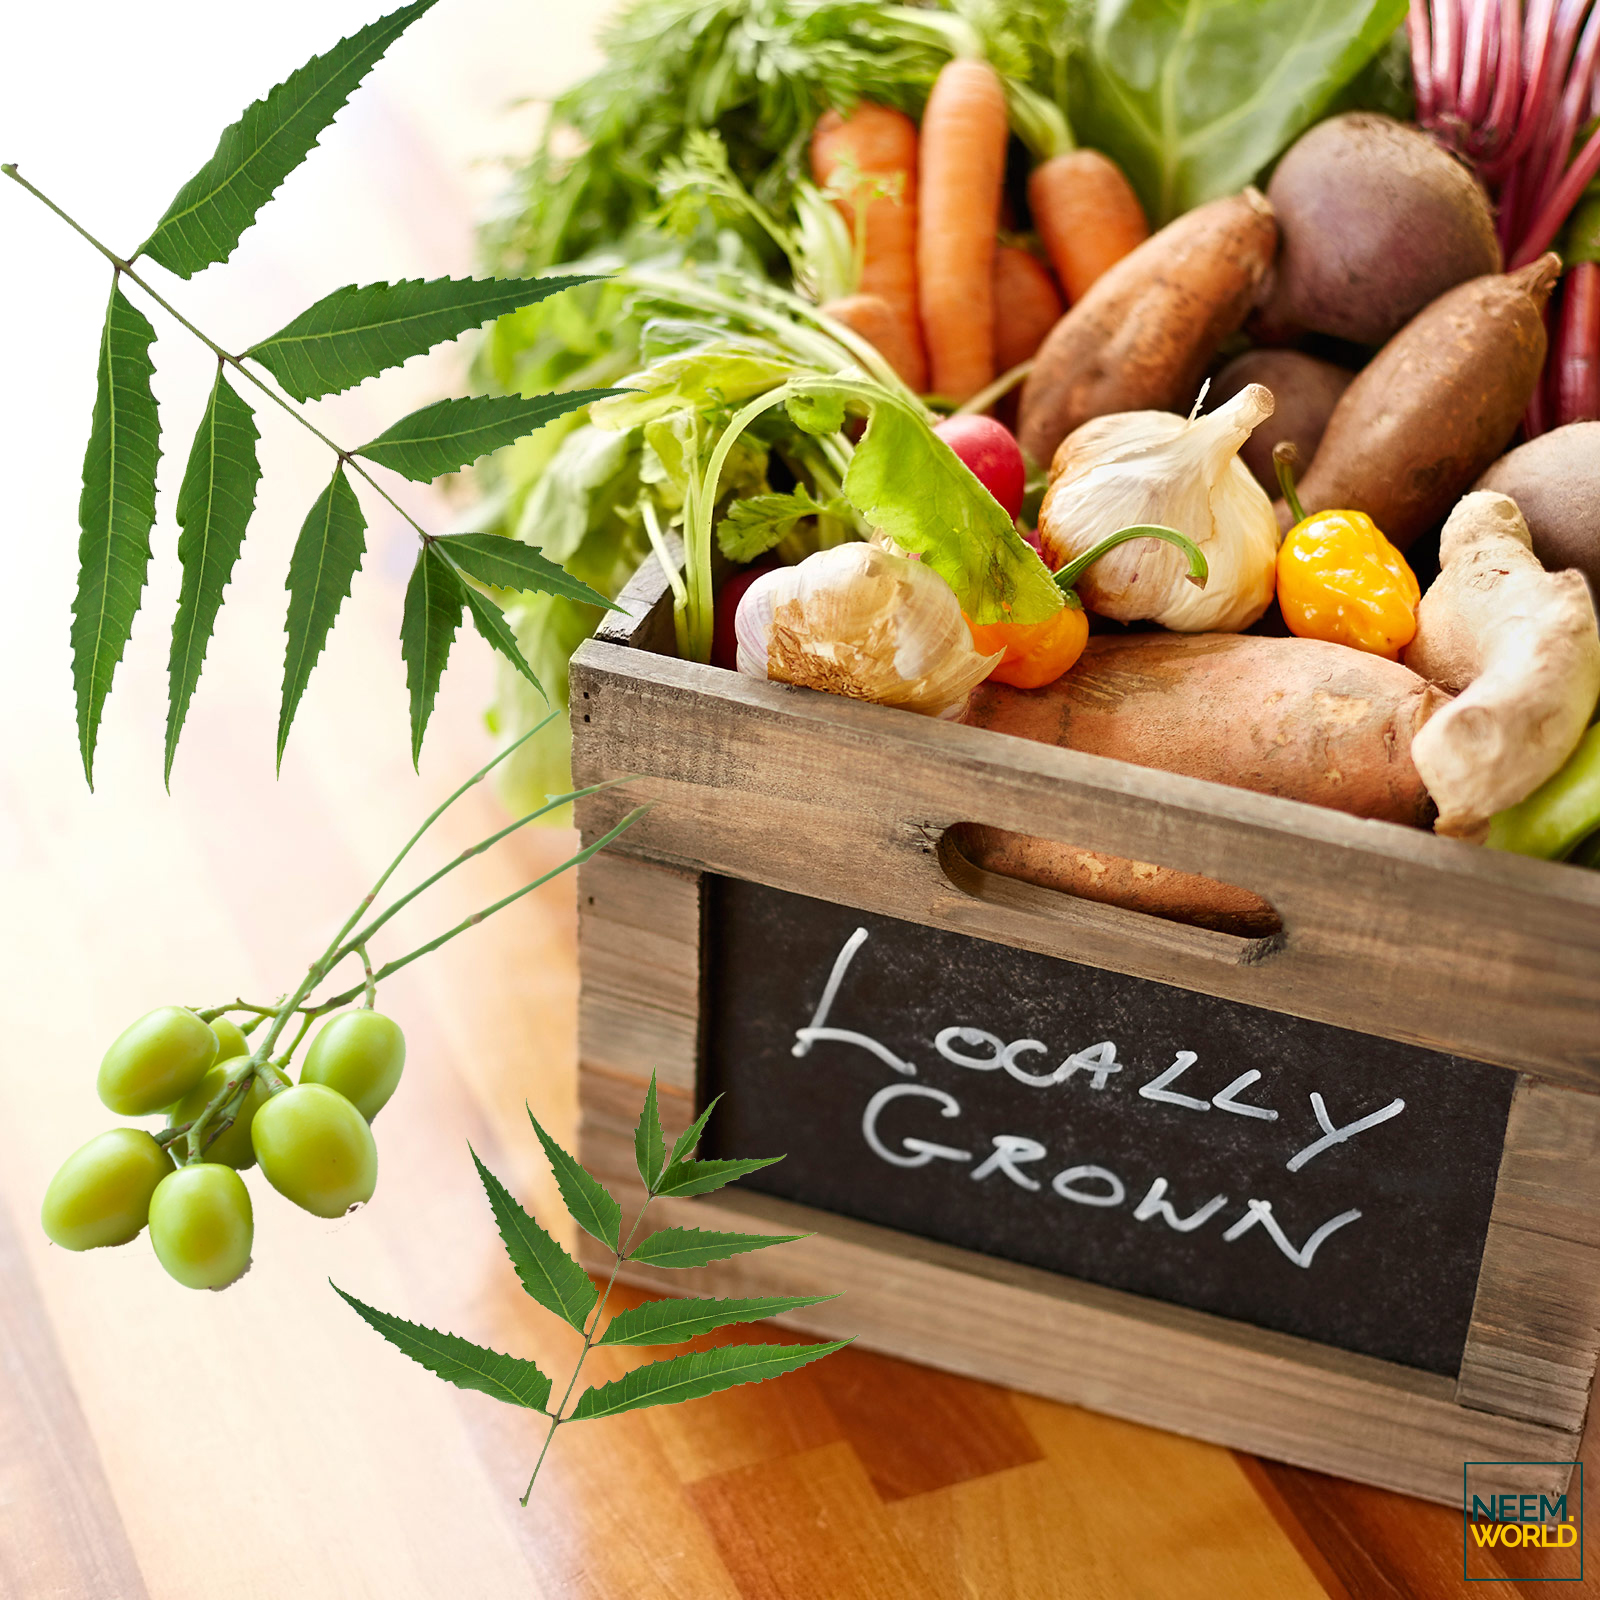 Homegrown vegetables in wooden crate at kitchen